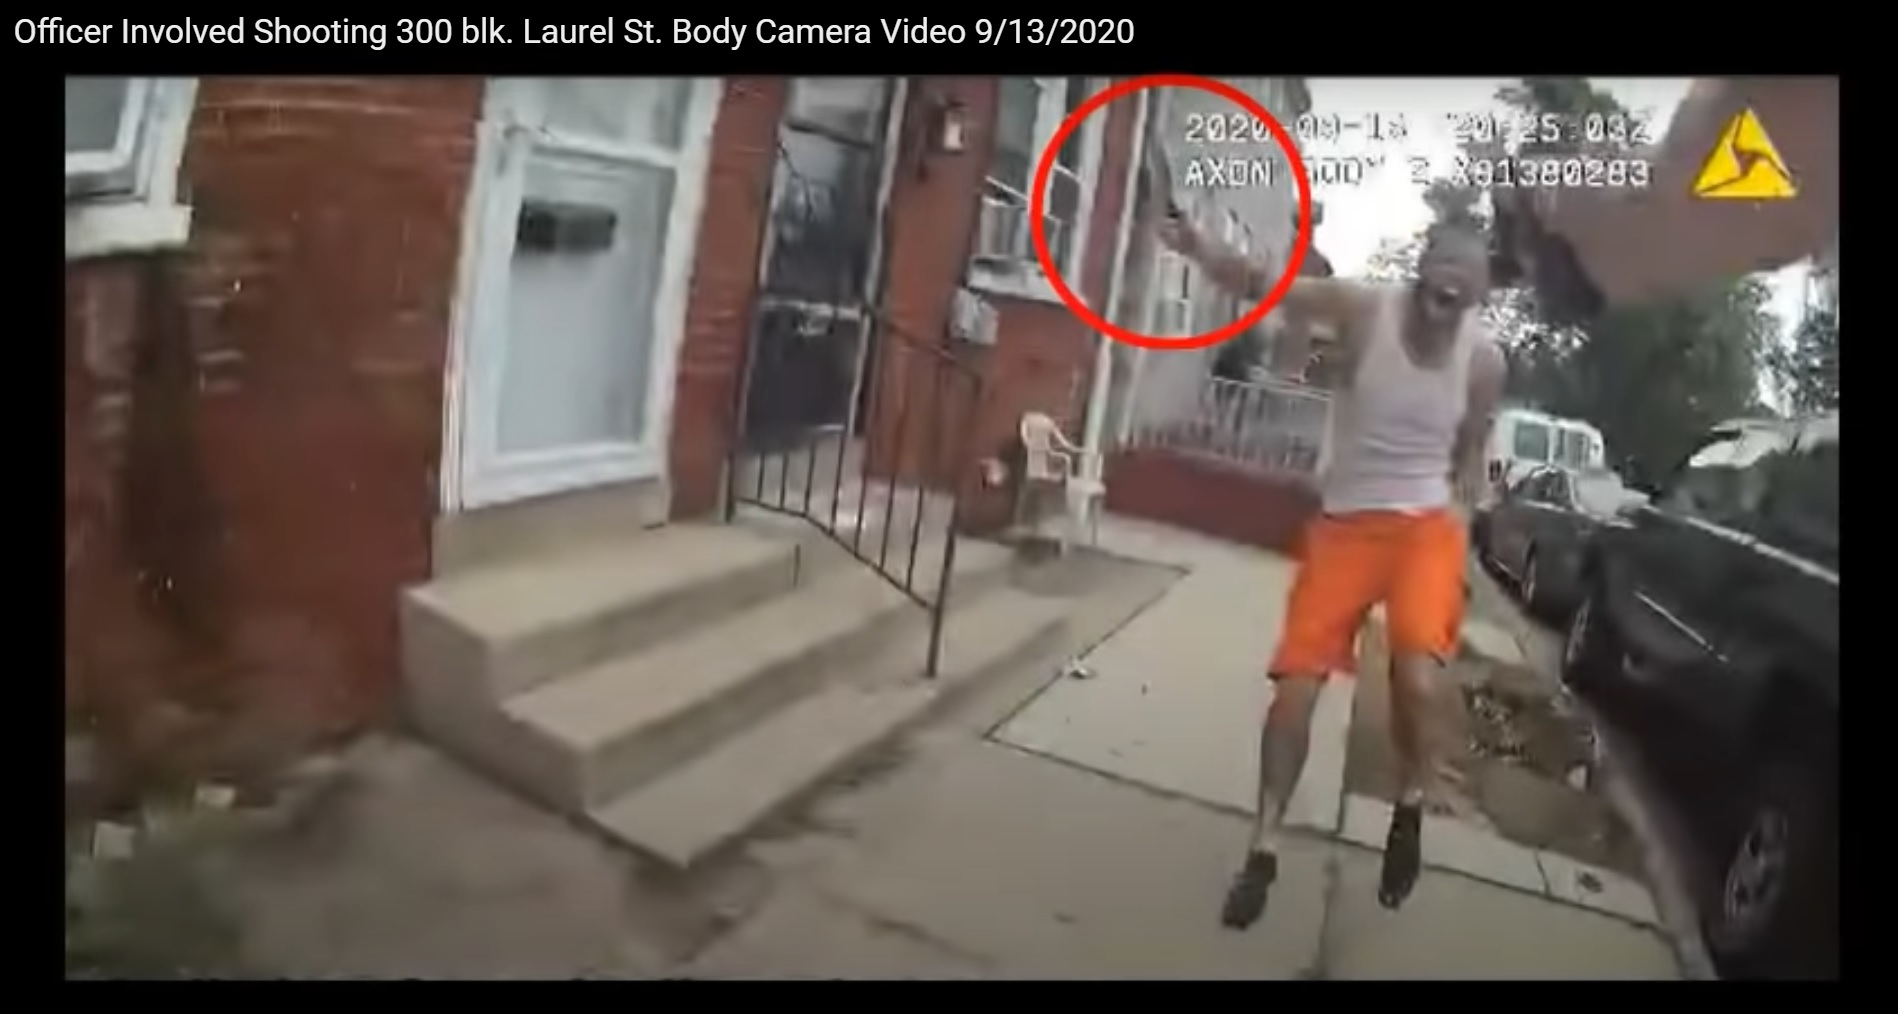 Ricardo Munoz is seen with a knife in this still image taken from bodycam video posted by the Lancaster City Police on Sunday, Sept. 13, 2020.